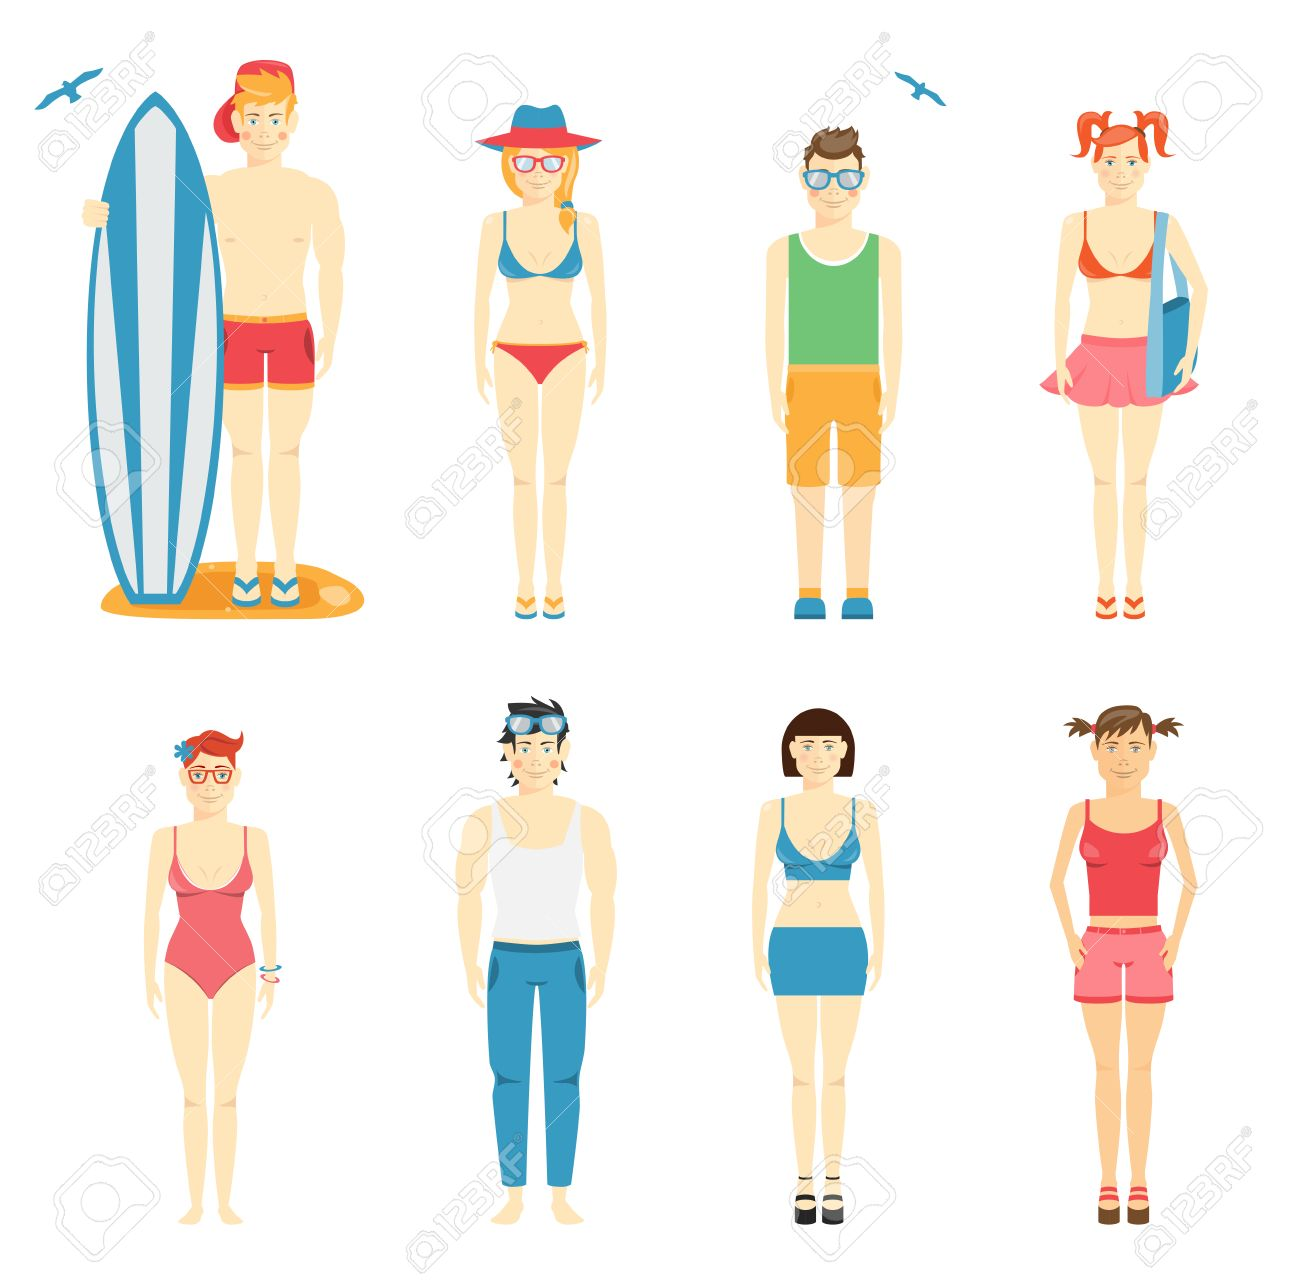 Icons Of Kids In Summer Clothing And Swimsuits Stock Vector